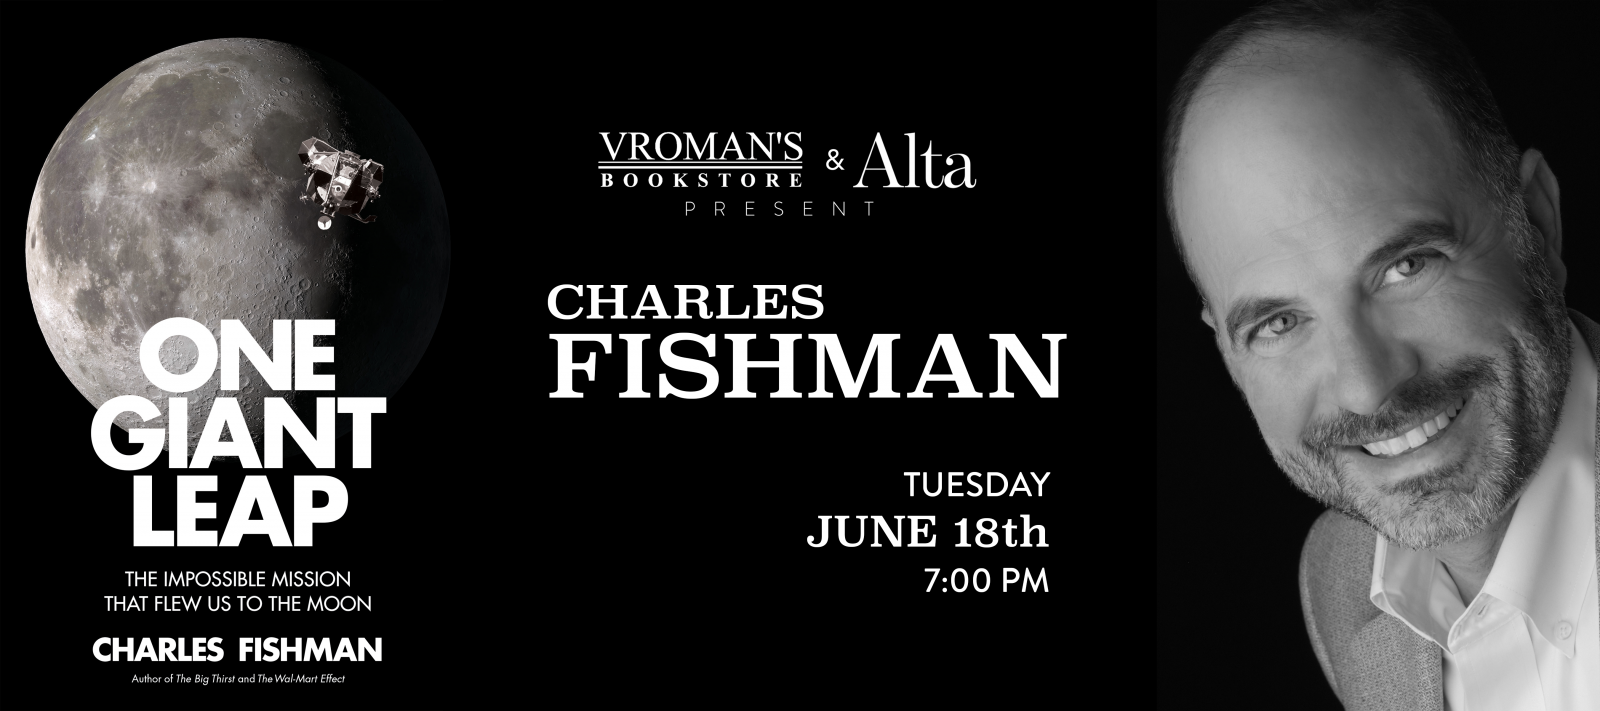 Charles Fishman book signing Tuesday June 18th at 7pm